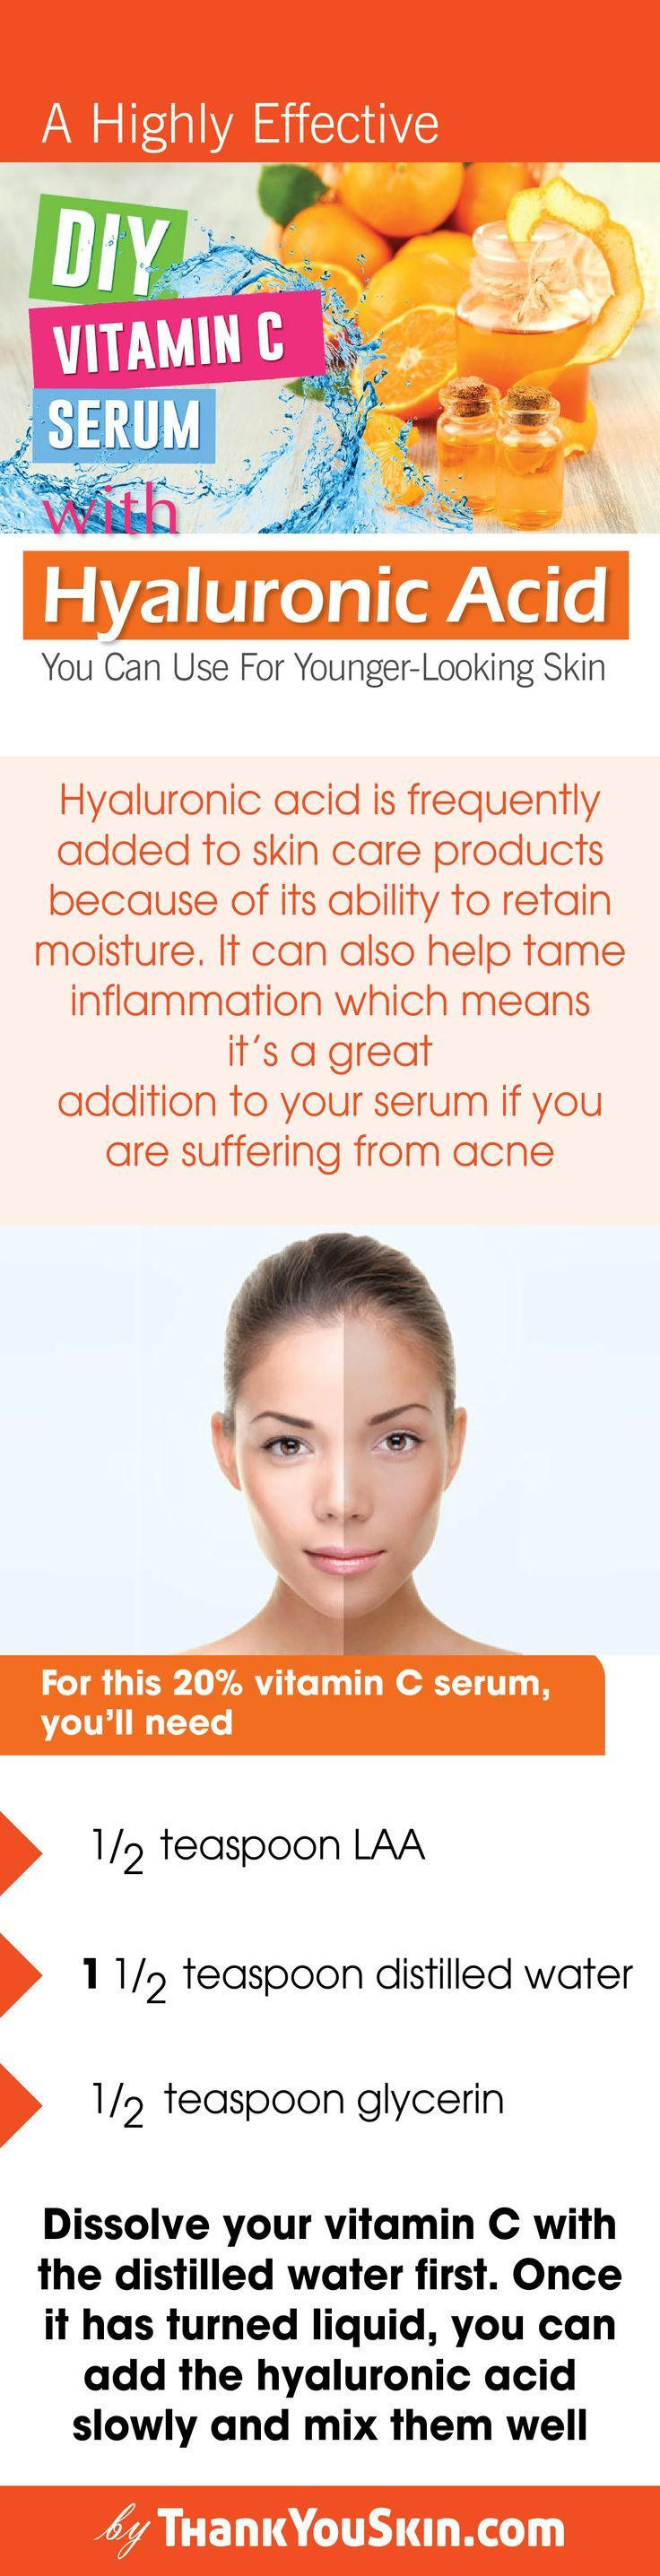 Diy vitamin c serum that actually works with images